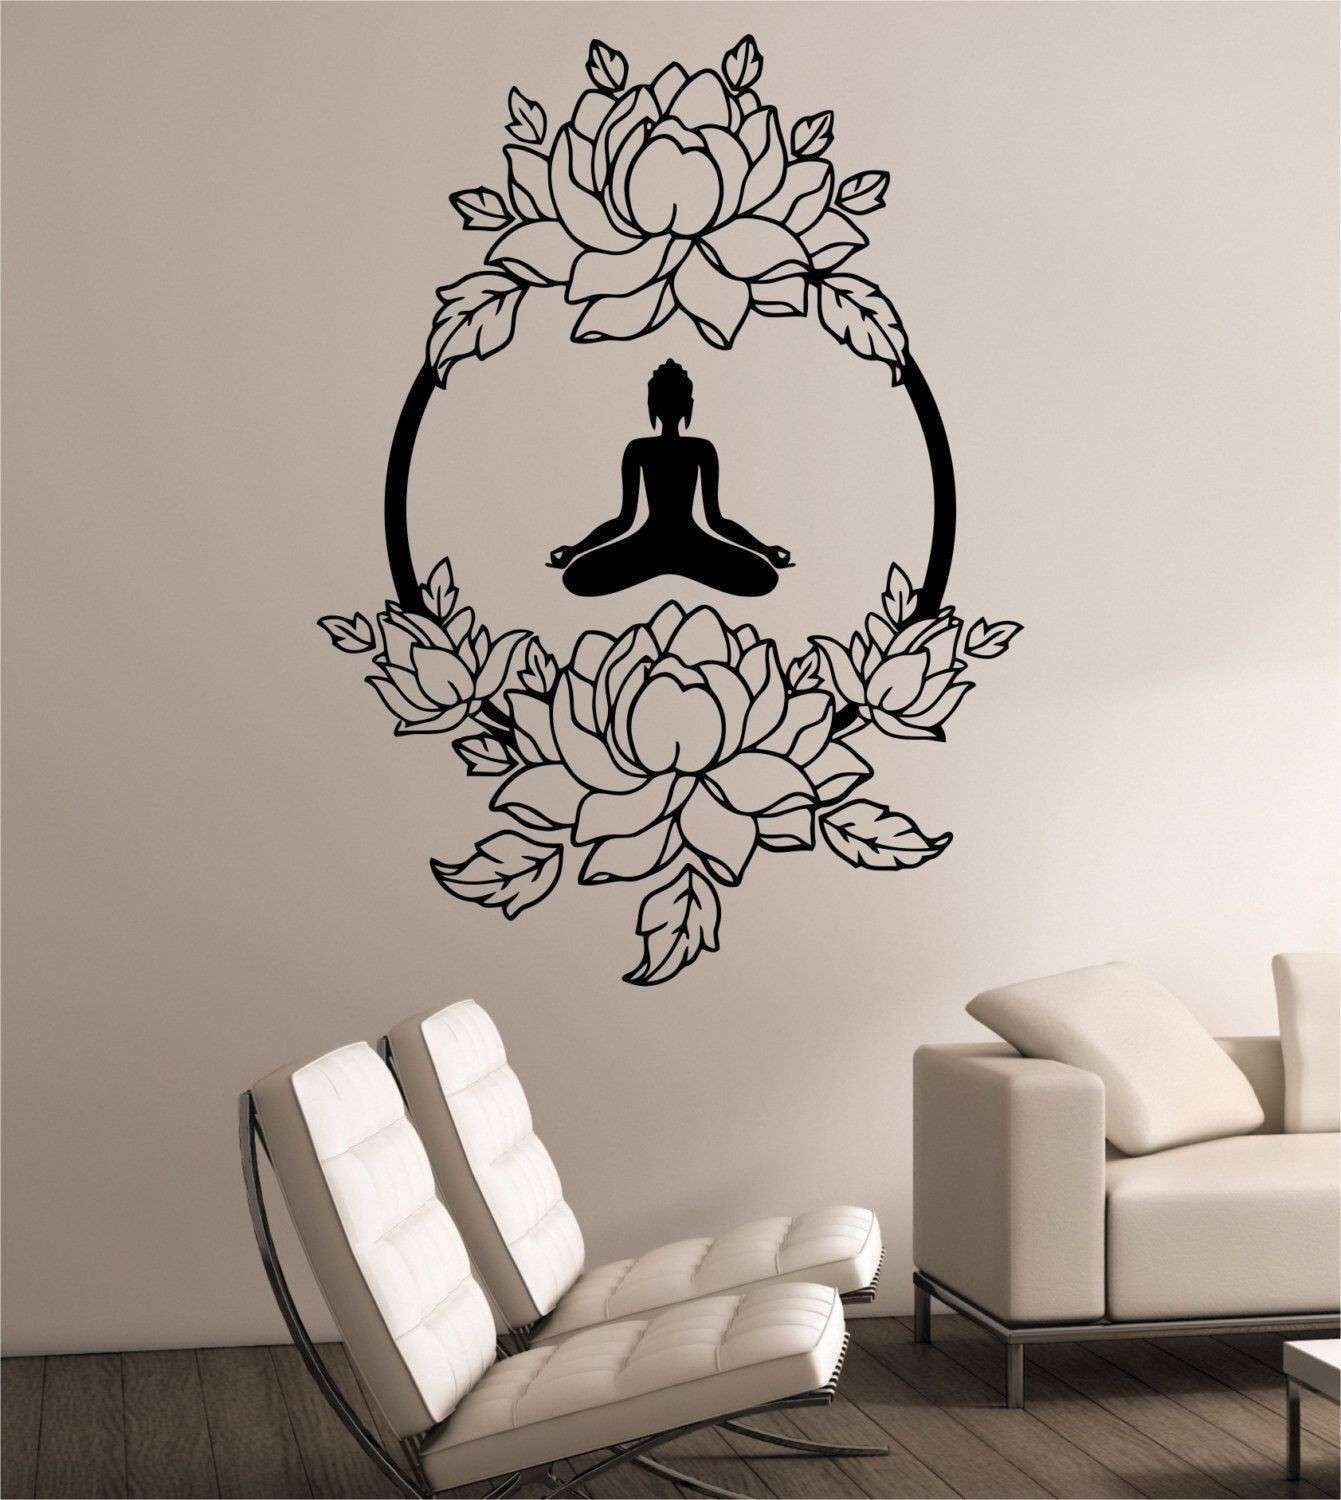 Cool Wall Art For Bedroom Fresh Wall Decal Luxury 1 Kirkland Wall With Regard To Best And Newest Cool Wall Art (View 8 of 15)